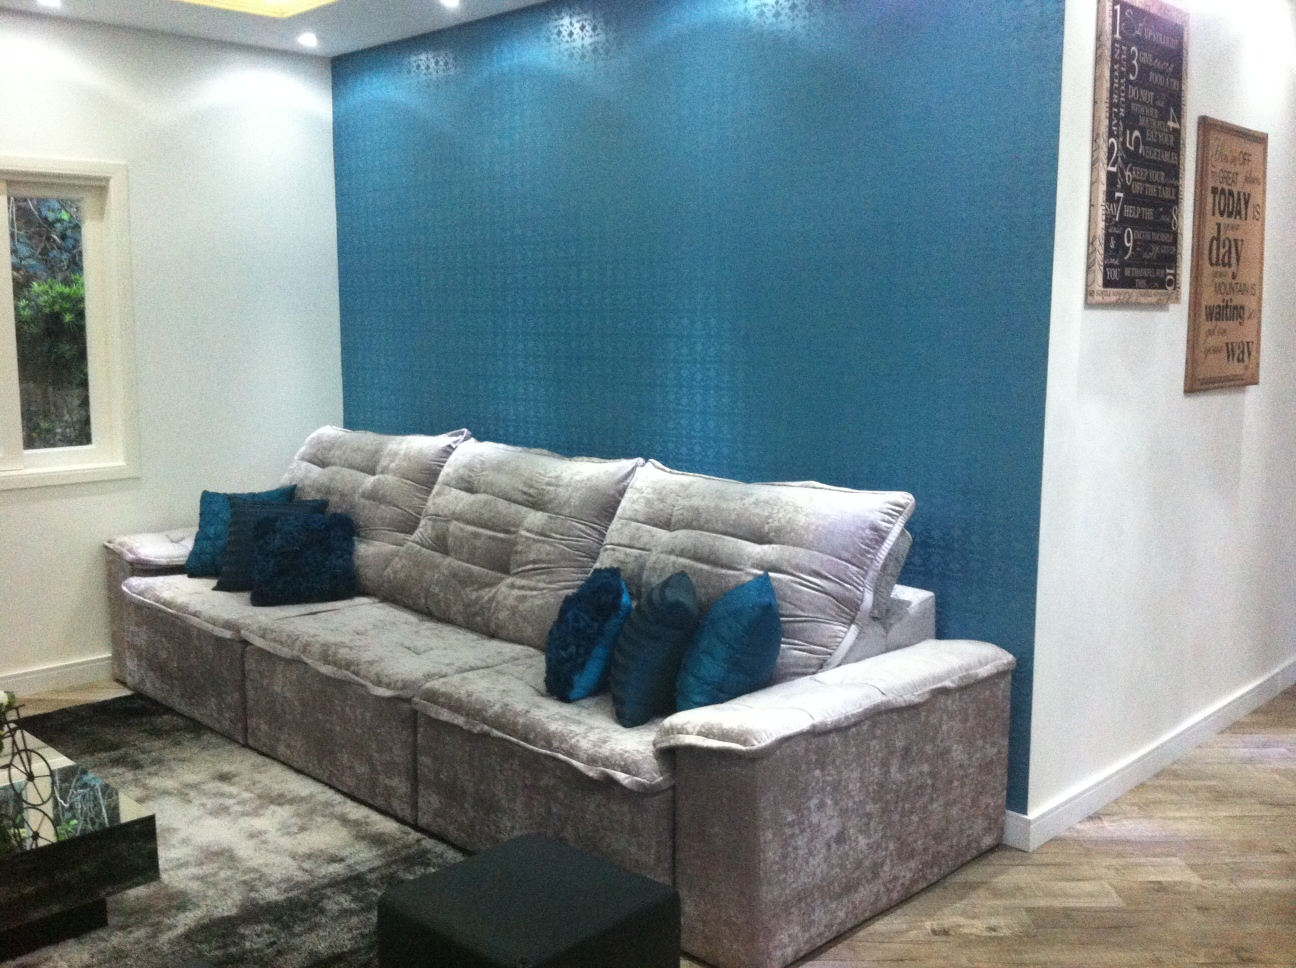 Decoracao Sala De Estar Sofa Cinza ~ Sala Decoracao # decoracao de sala azul turquesa